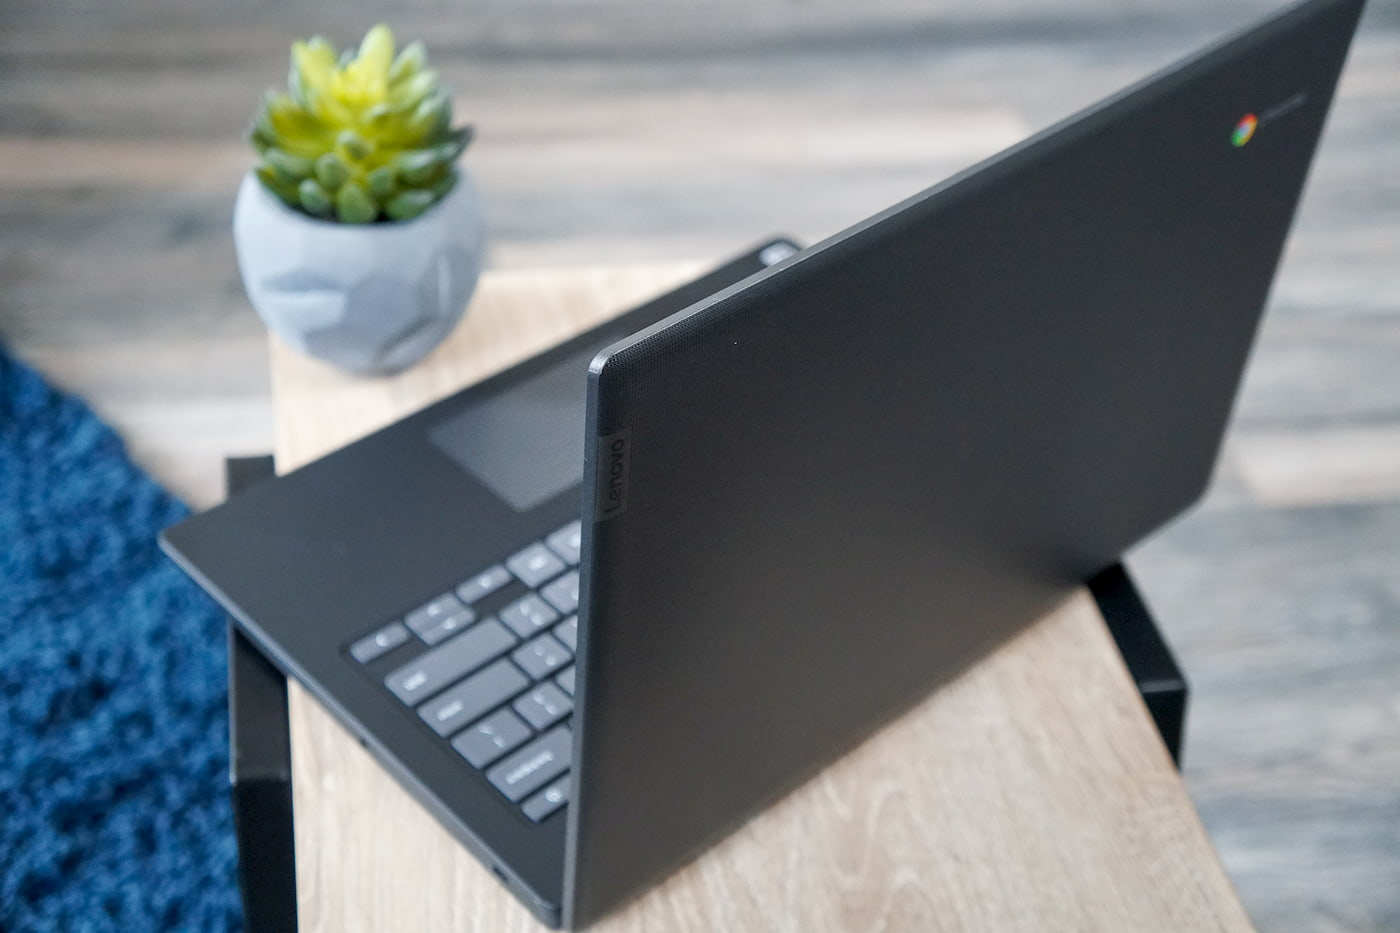 Google extends End of Life for handful of Chromebooks: Sign of things to come?